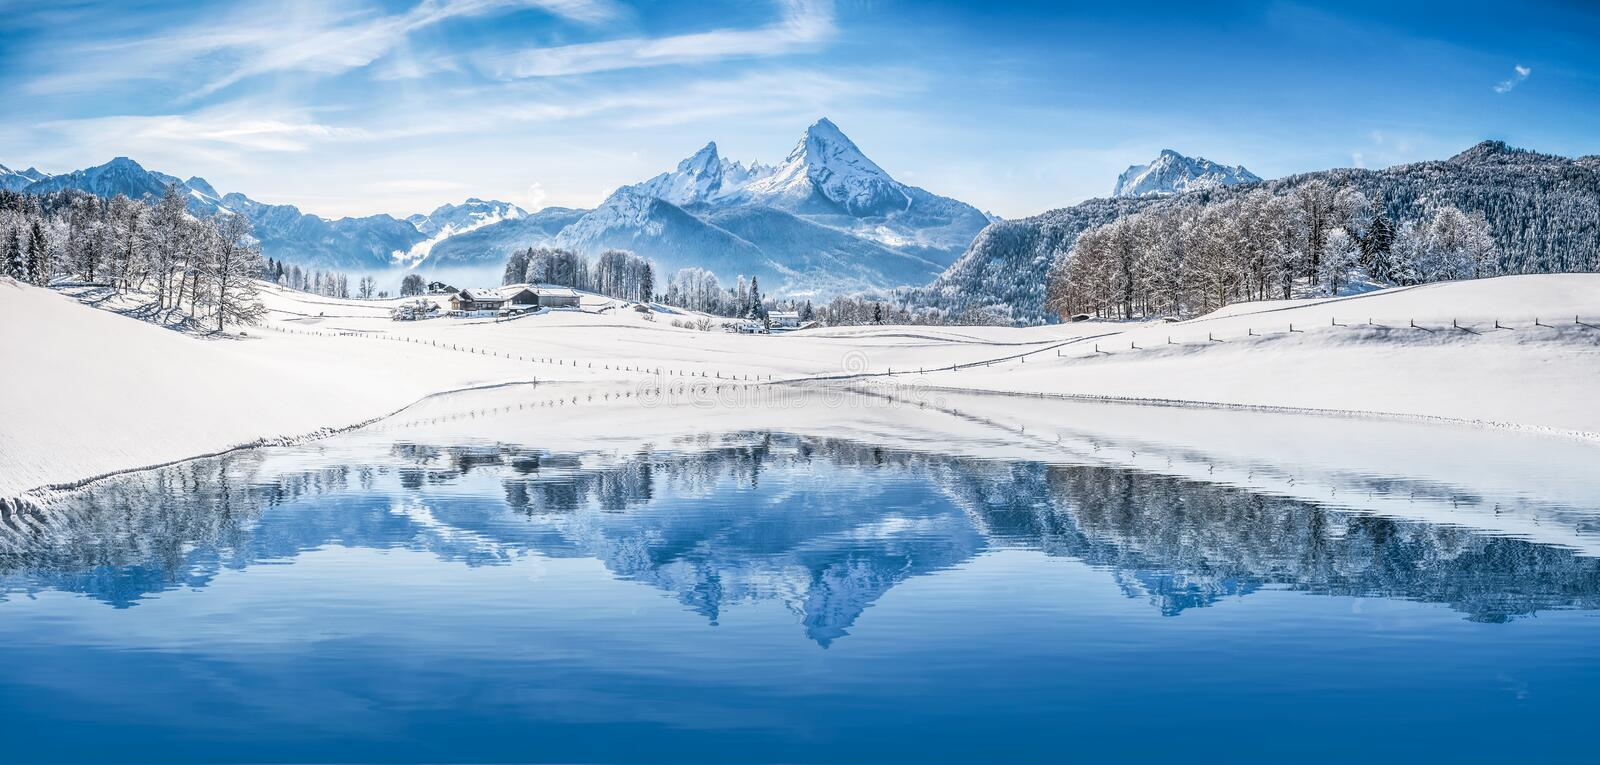 Winter wonderland in the Alps reflecting in crystal clear mountain lake. Panoramic view of beautiful white winter wonderland scenery in the Alps with snowy stock photography